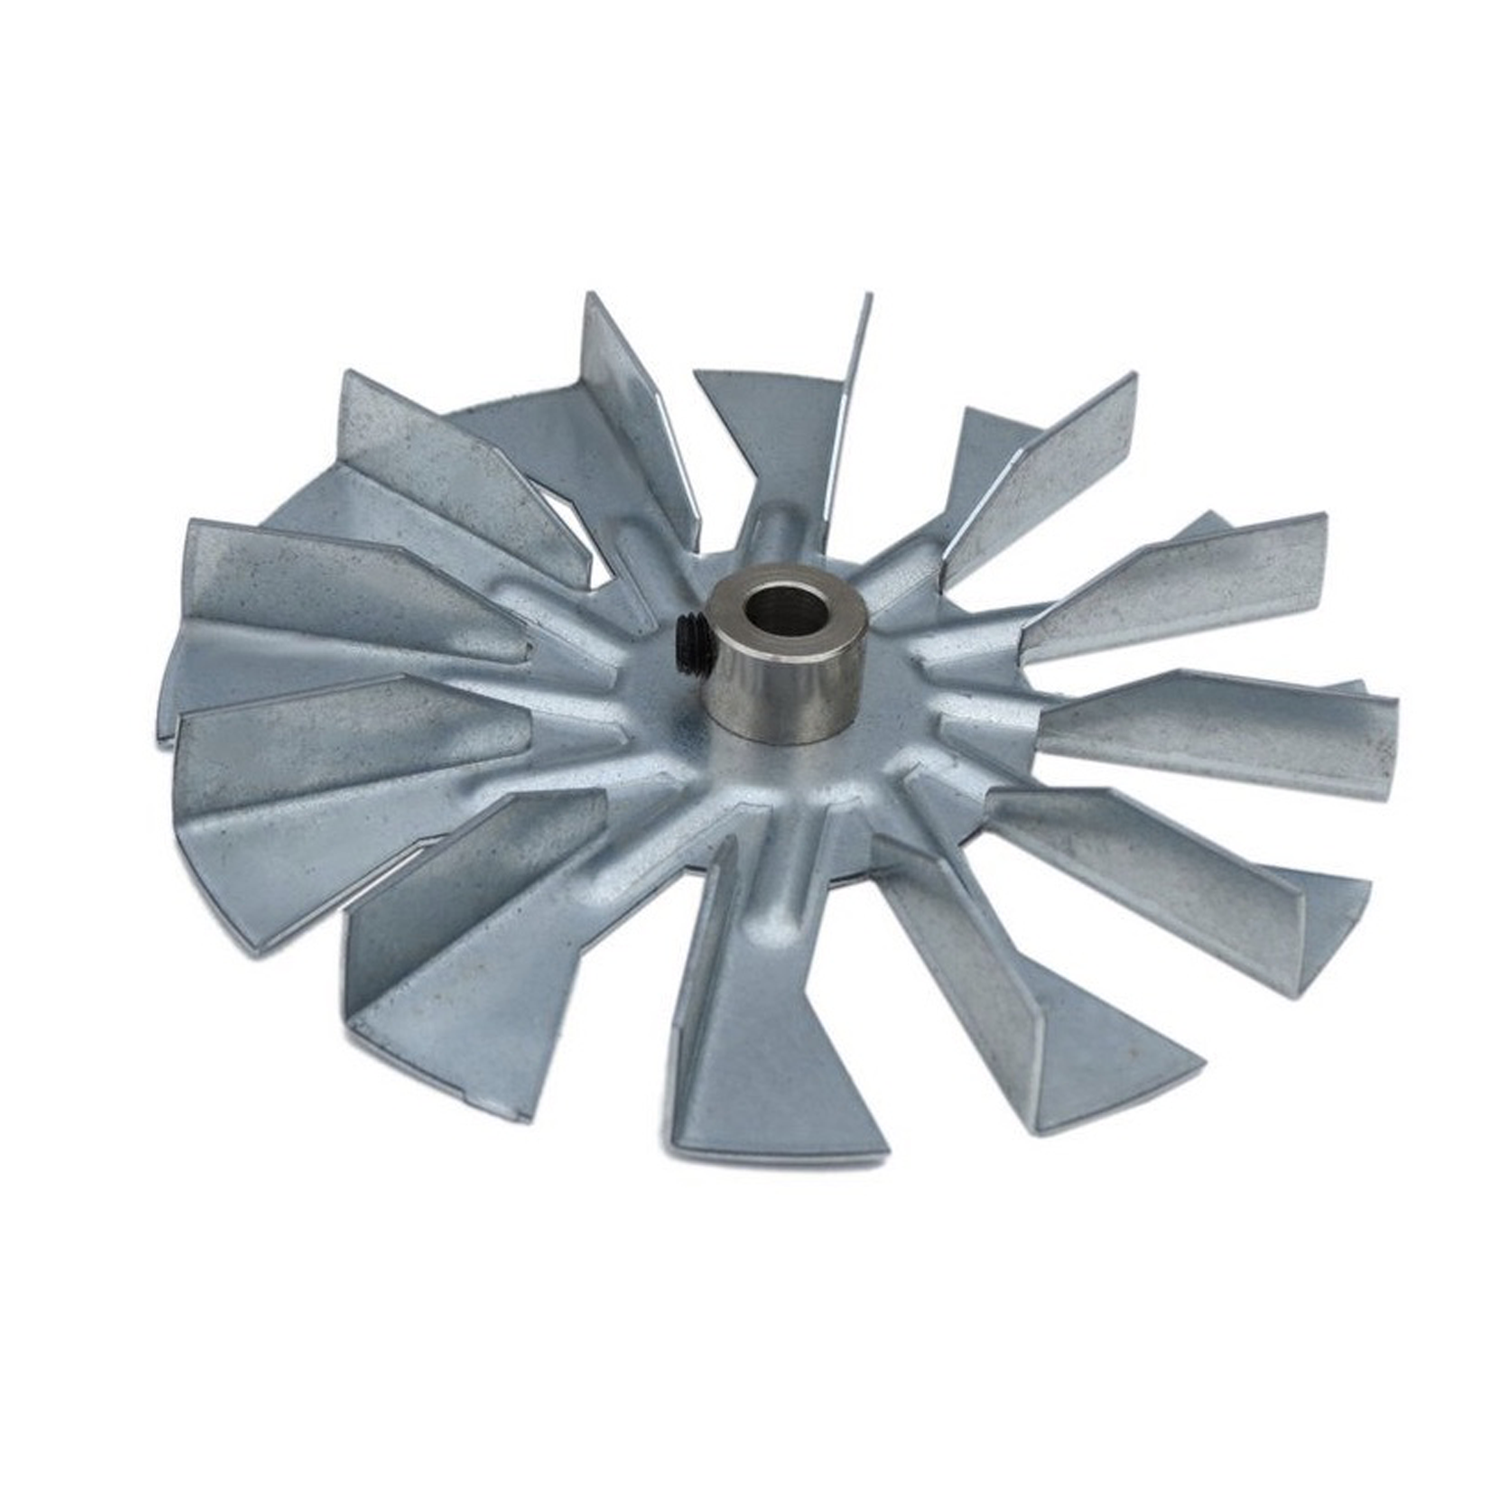 Englander Combustion Blower Impeller For PU-076002B, PP7900-4